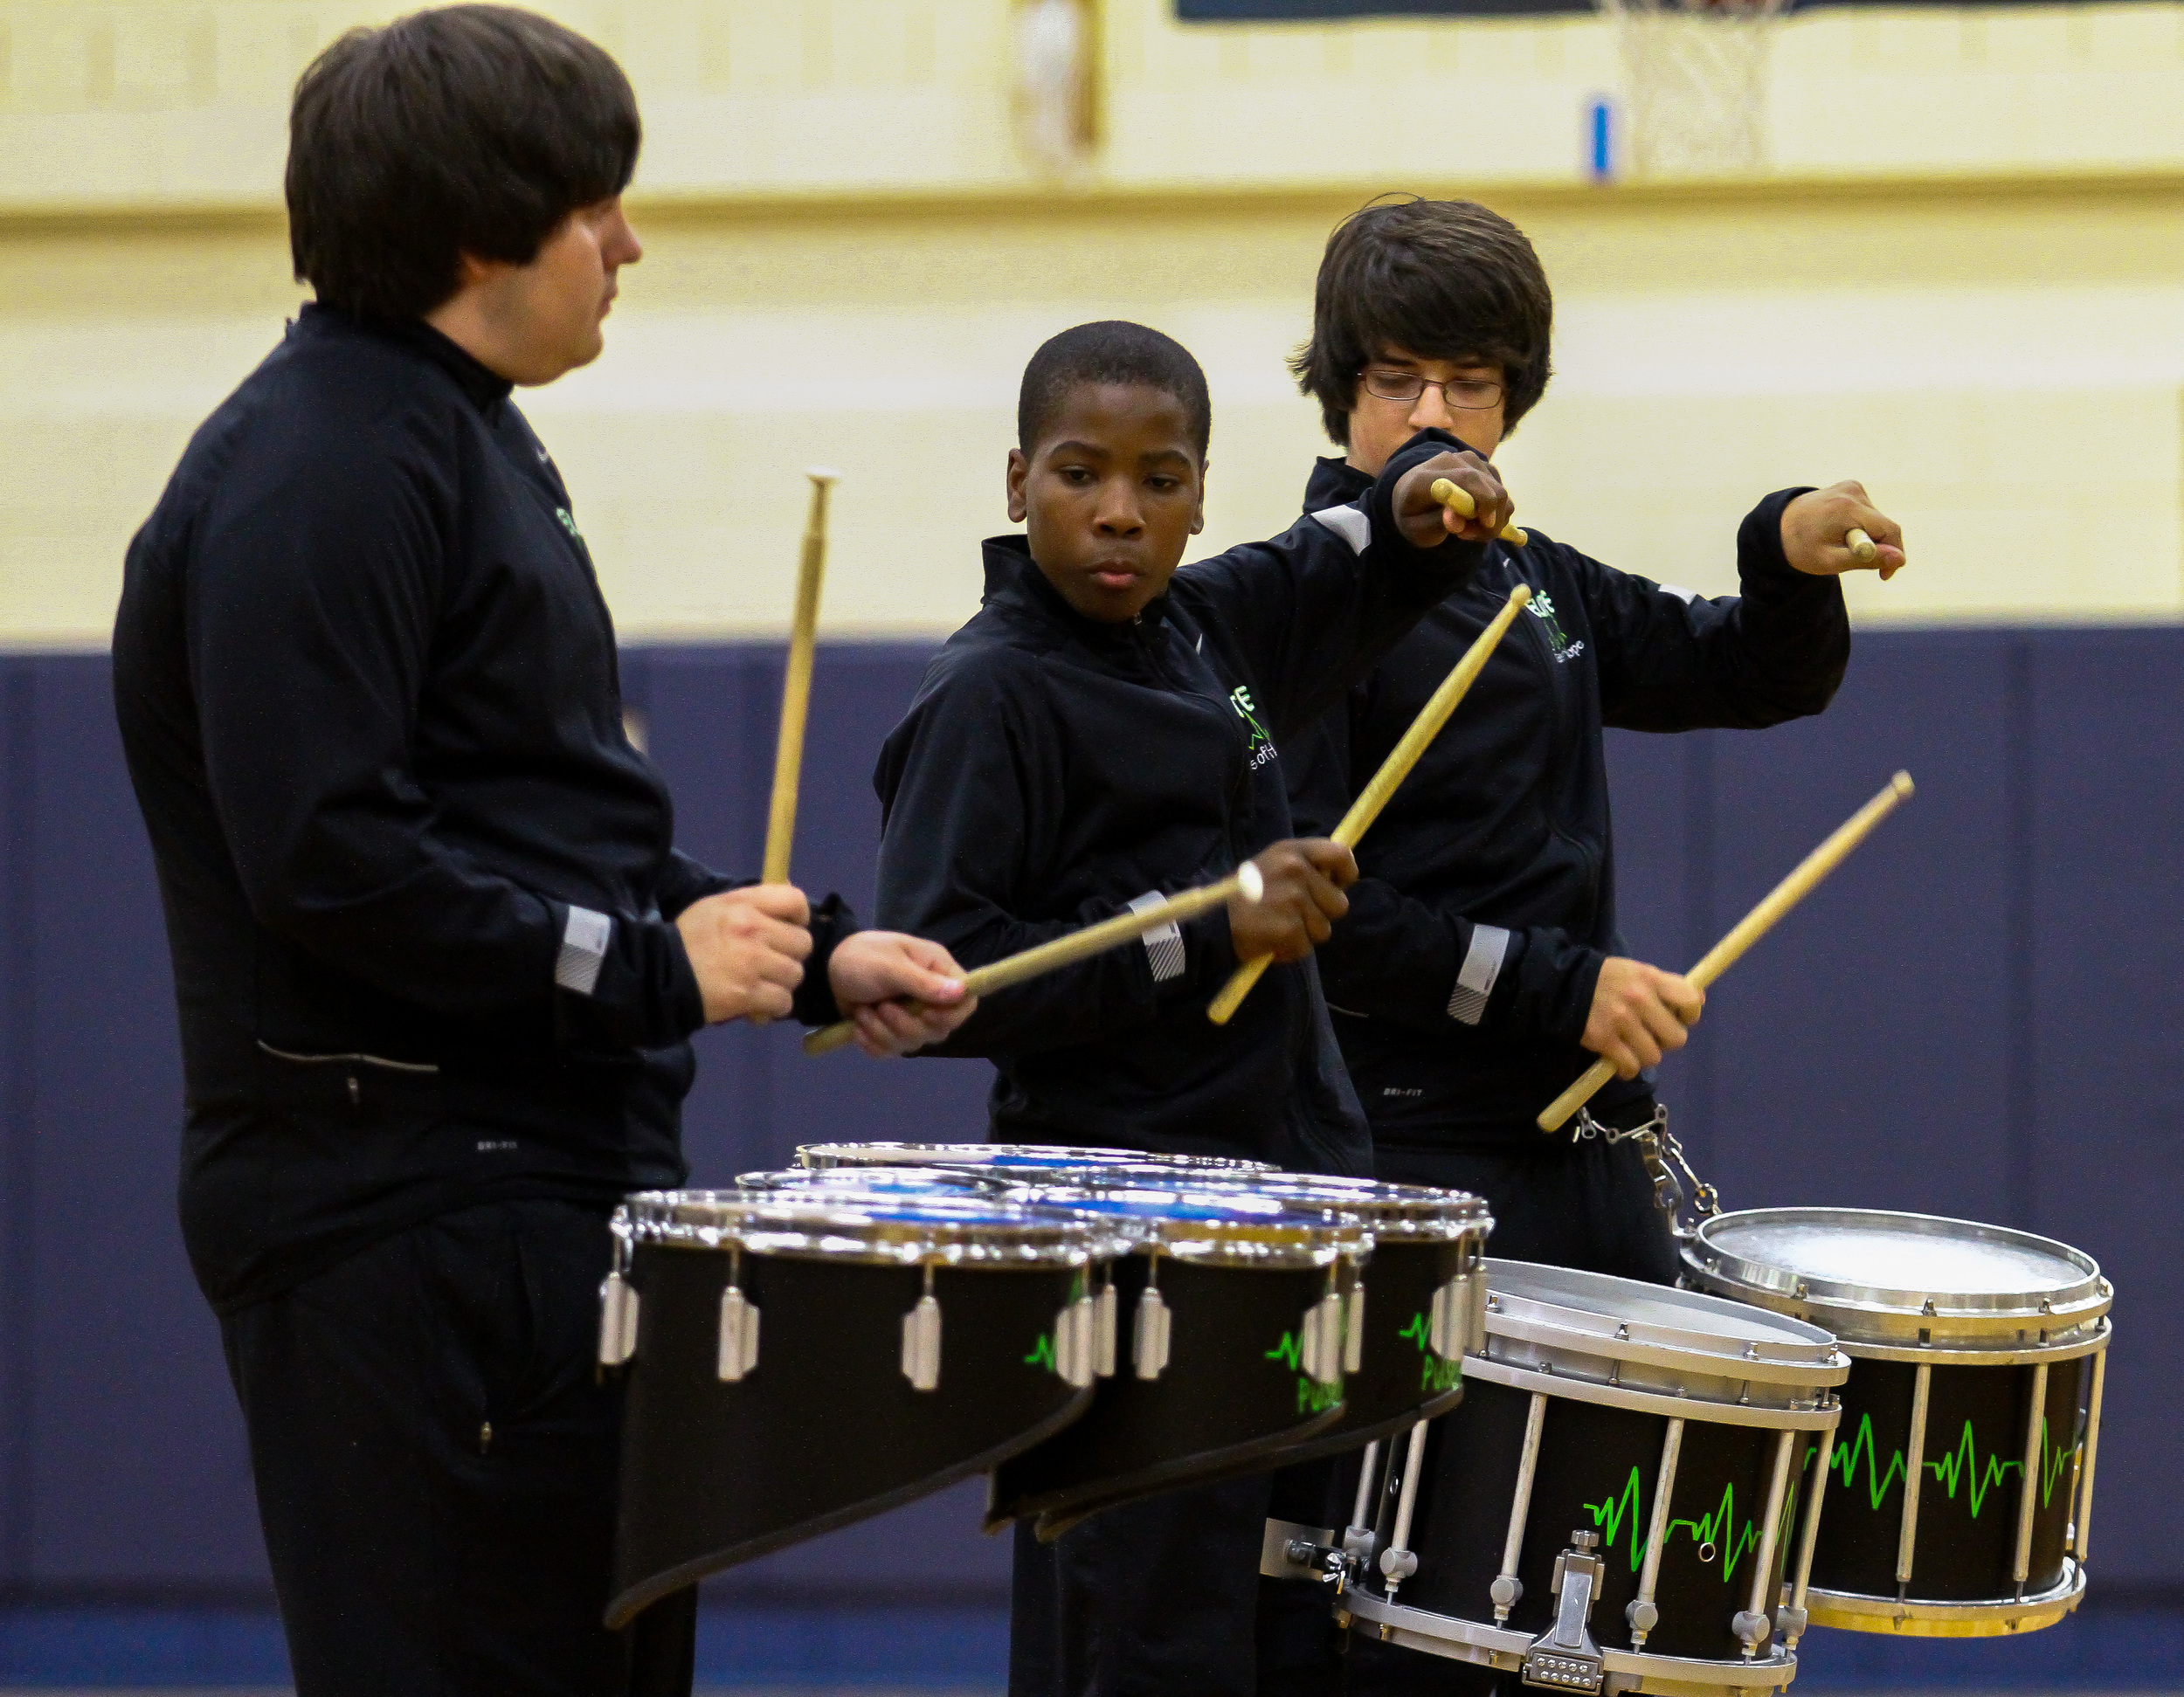 Peoria E.L.I.T.E. Pulses of Hope drummers performs before the start of the Kansas City Monarch vs Midwest Flames game at Woodruff High School in Peoria, IL